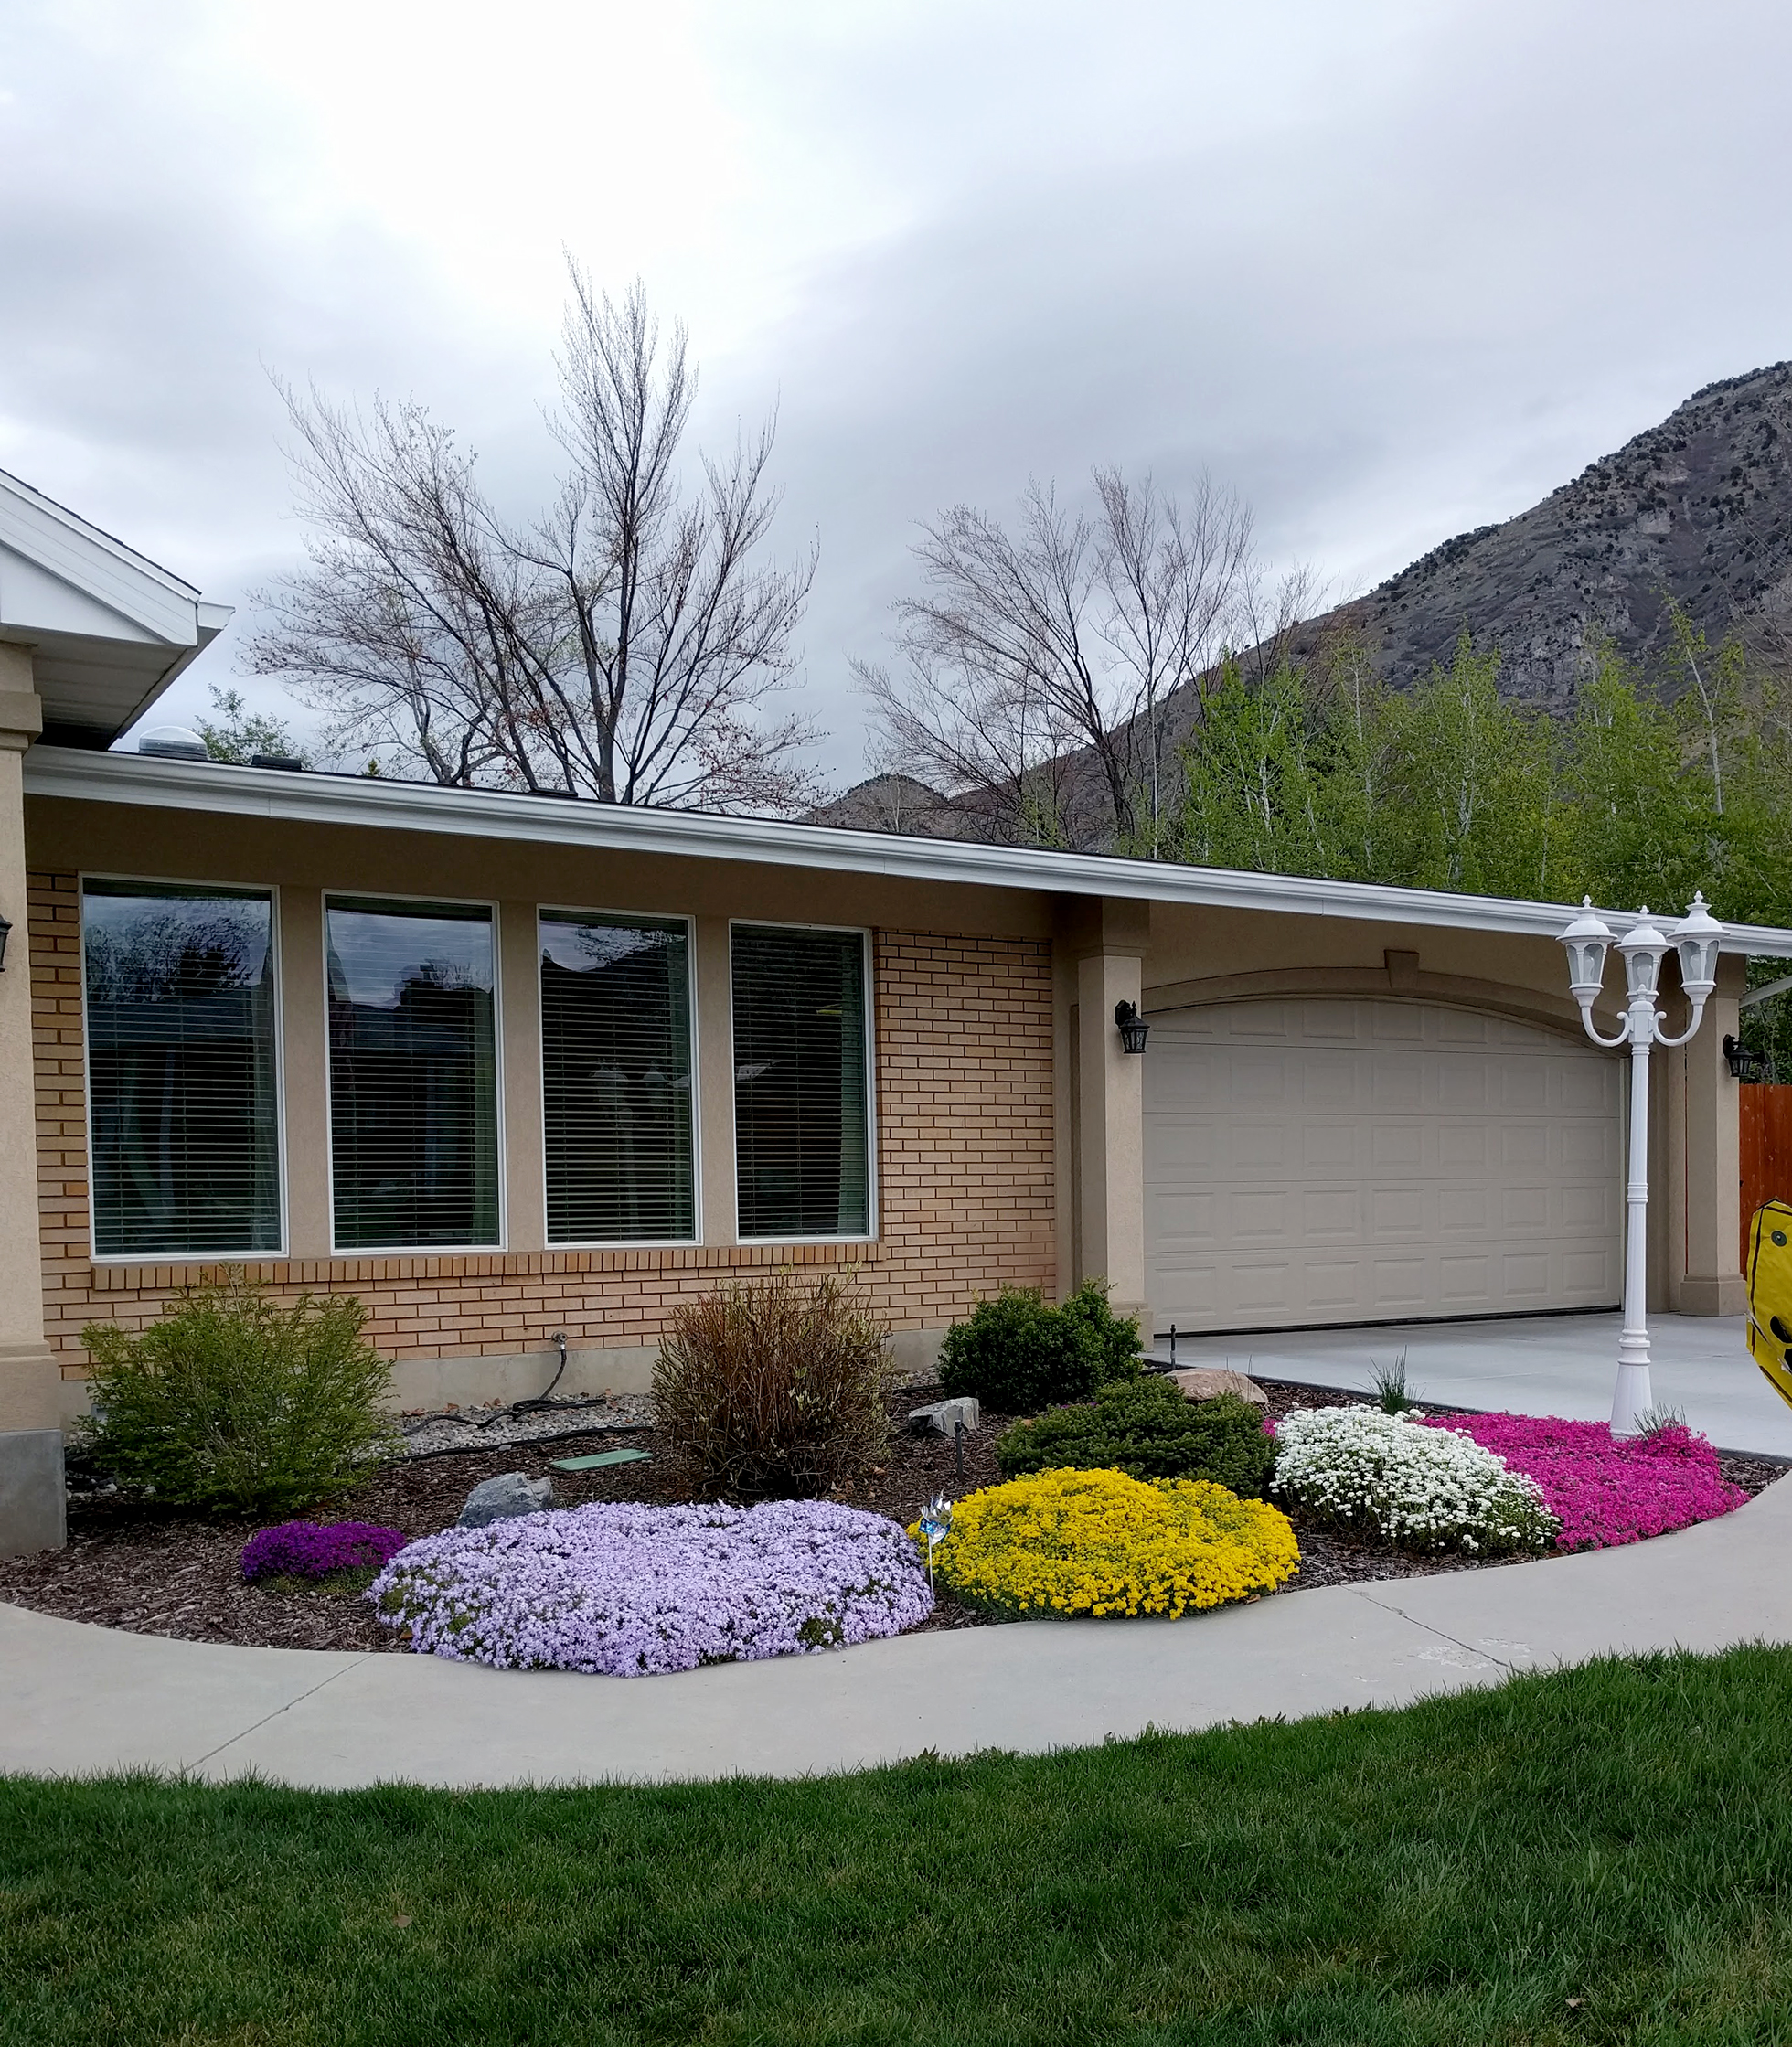 Front Yard Landscaping Ideas for Curb Appeal | HouseLogic on Backyard House Ideas id=62659